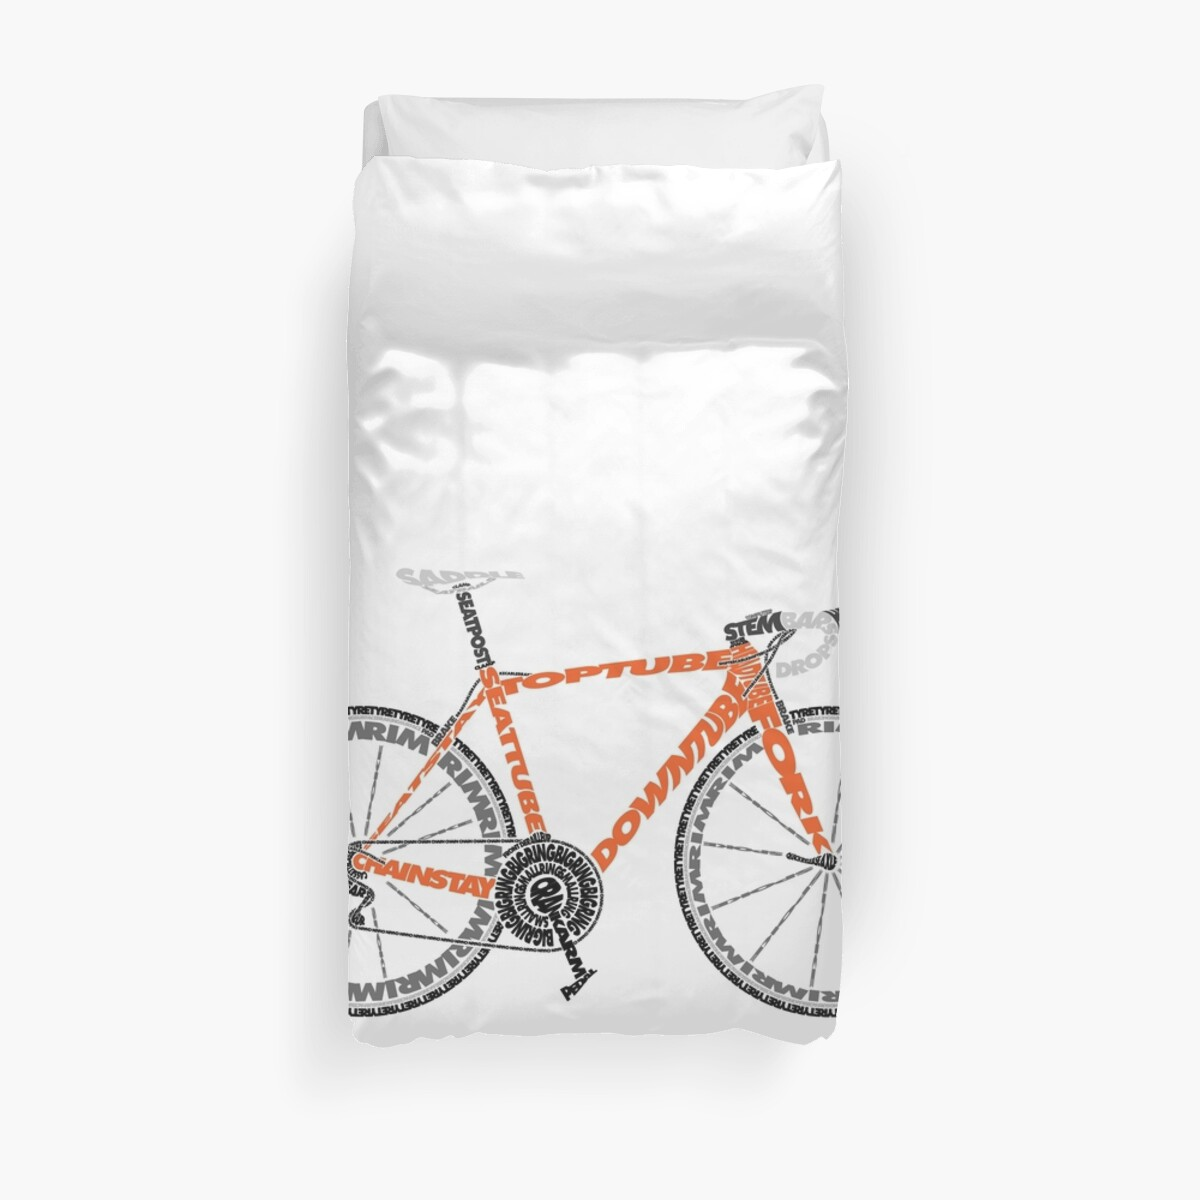 Typographic Anatomy Of A Road Bike Duvet Covers By Jarodface